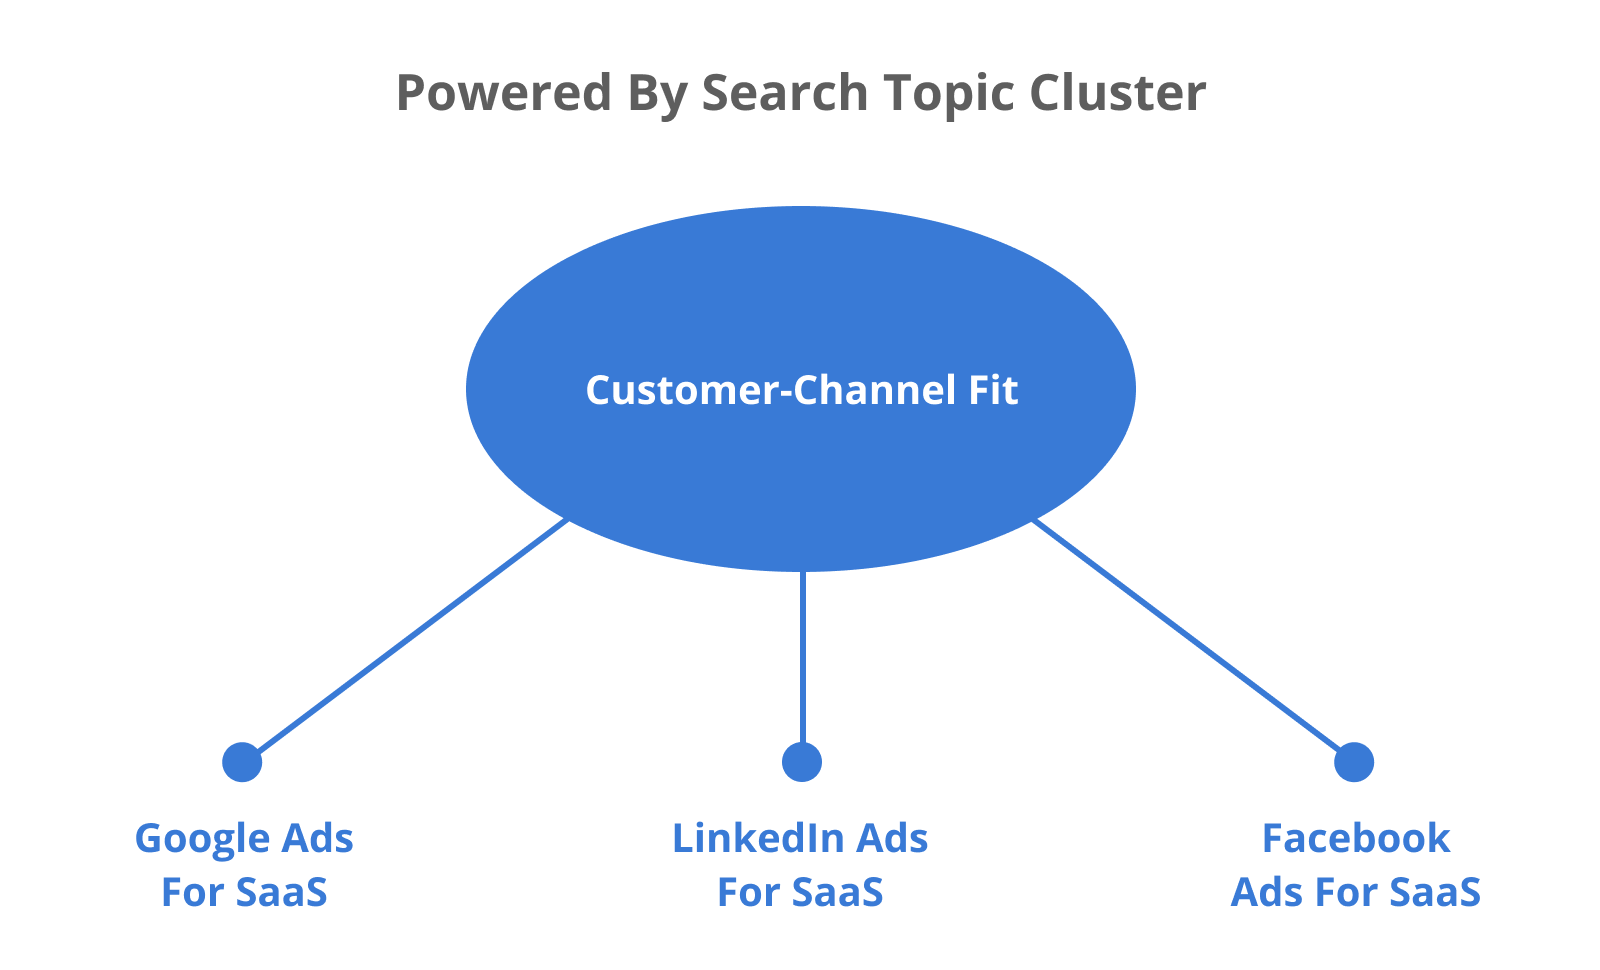 Powered by Search Topic Clusters: from Customer-Channel Fit to Google Ads for SaaS, LinkedIn Ads for SaaS, Facebook Ads for SaaS.